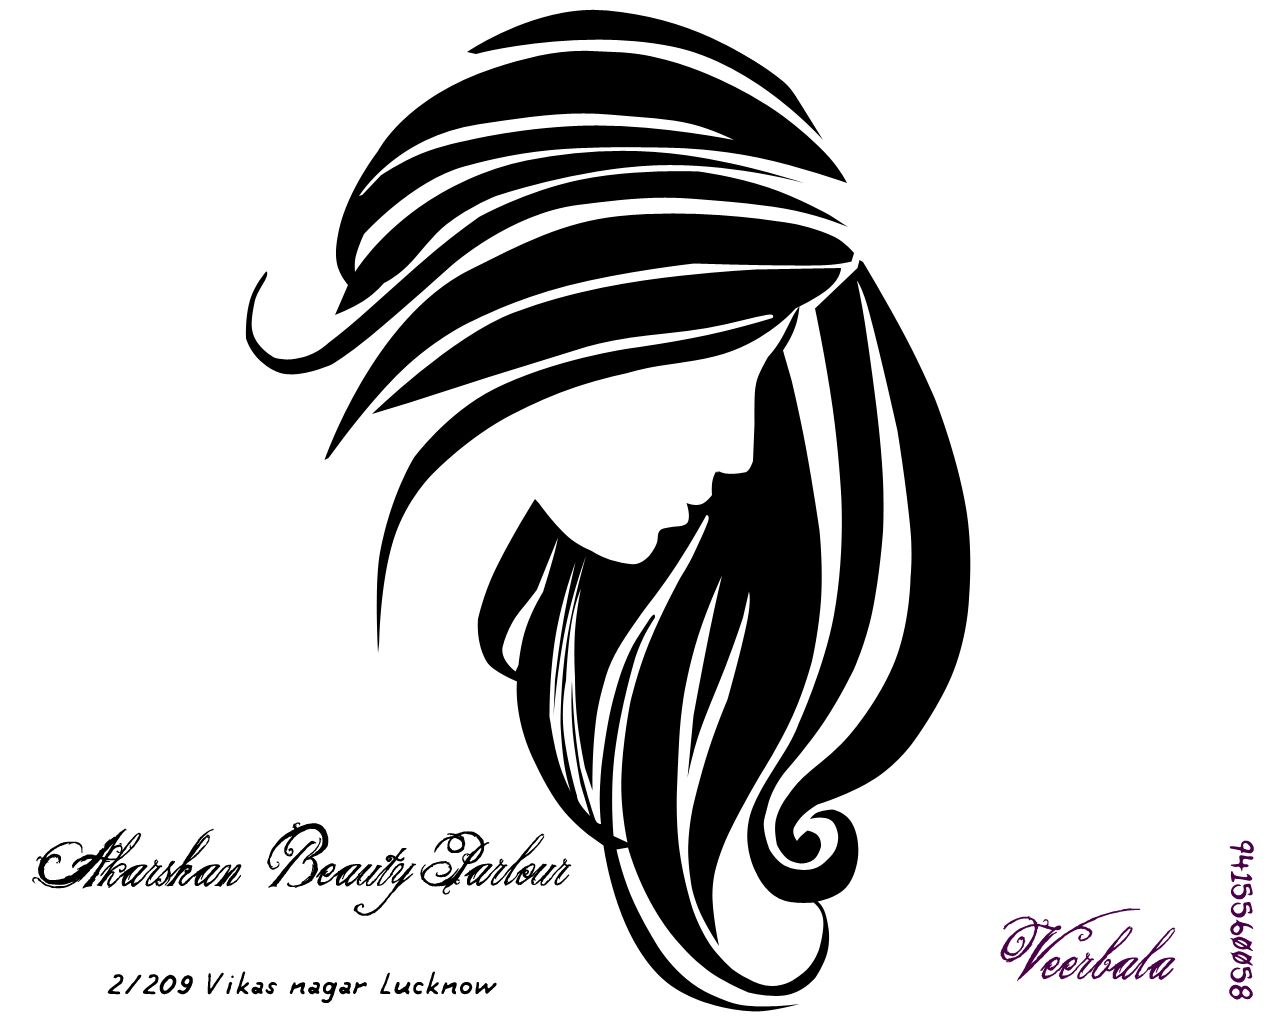 Akarshan Beauty Parlour Hair Salons Pinterest Parlour - Girl hairstyle vector free download